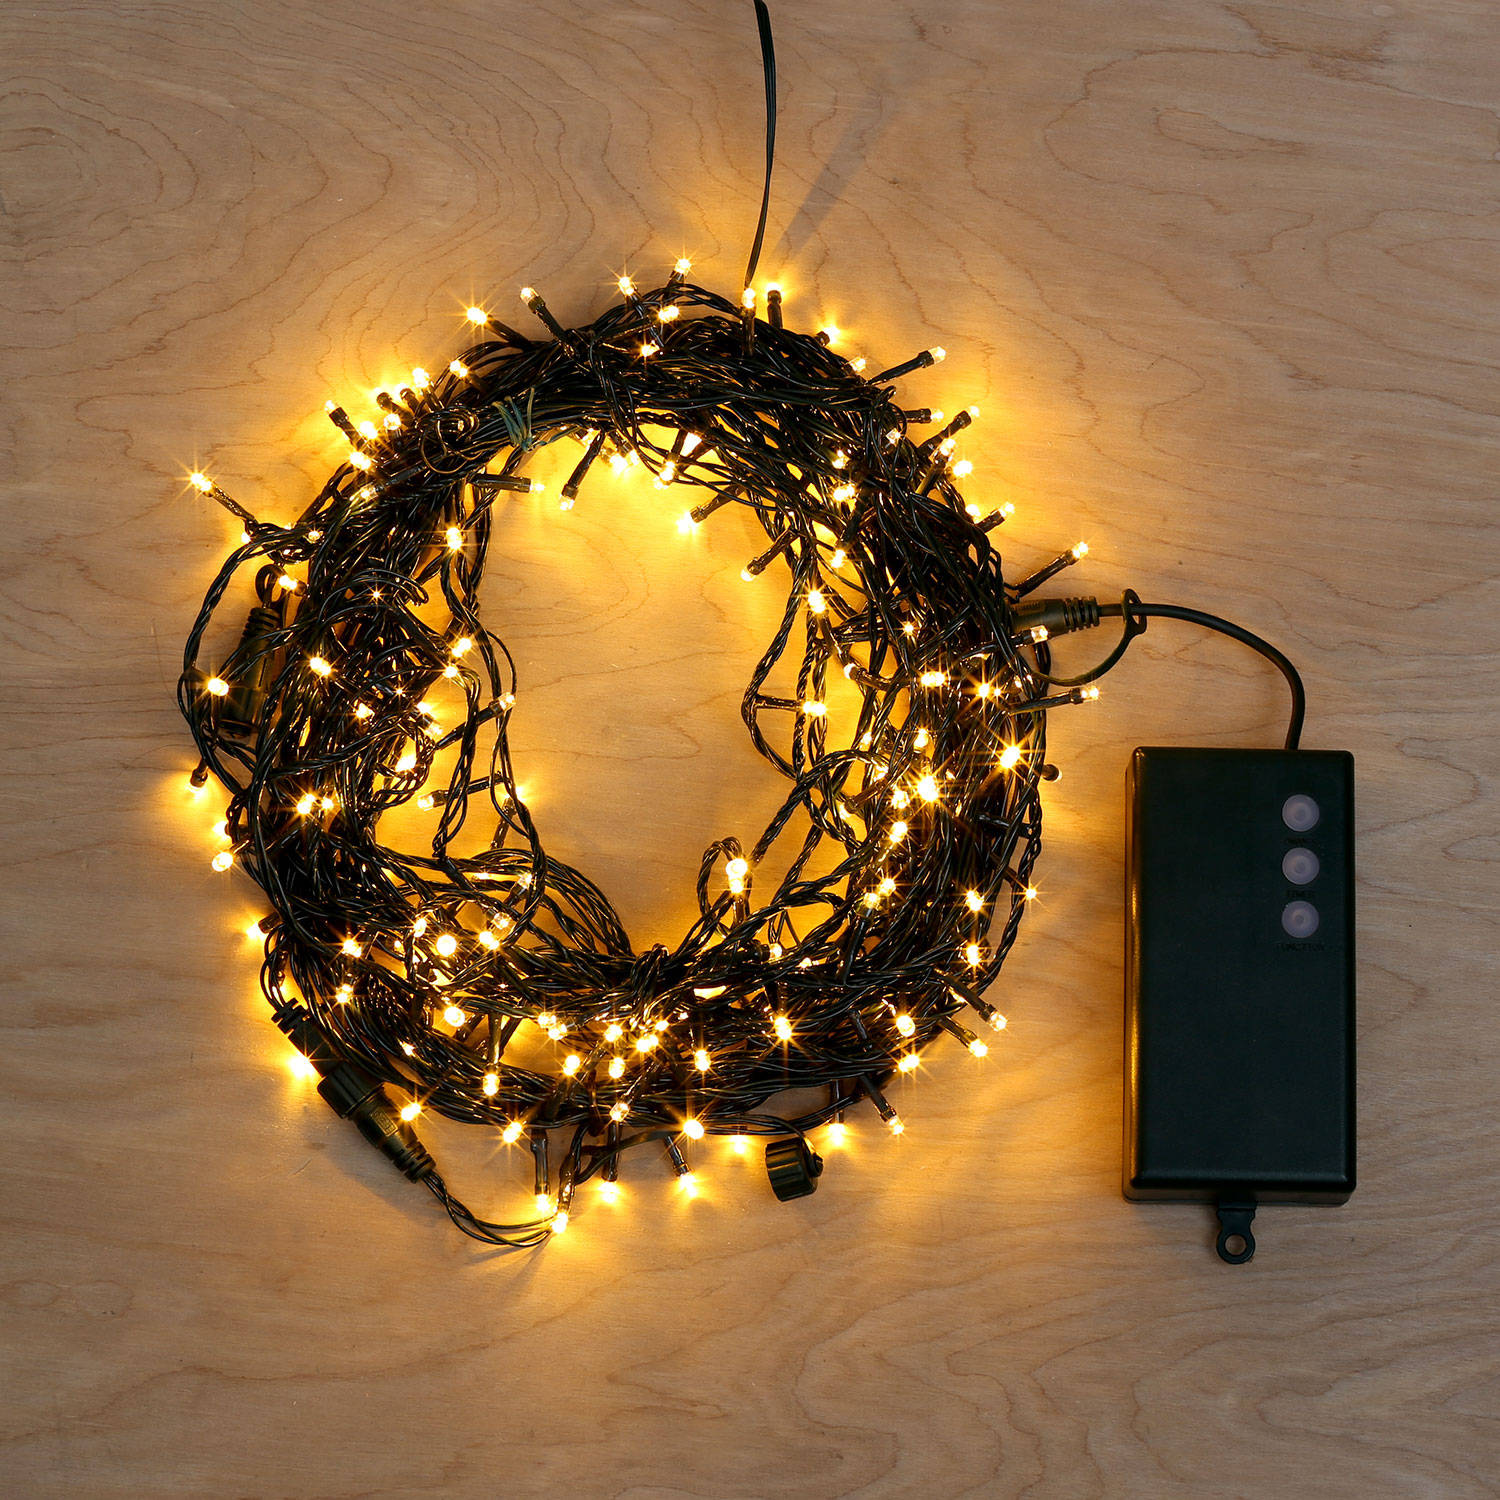 How To Make String Lights Battery Powered : Battery Operated Led String Lights With Timer Battery Operated Led Rachael Edwards